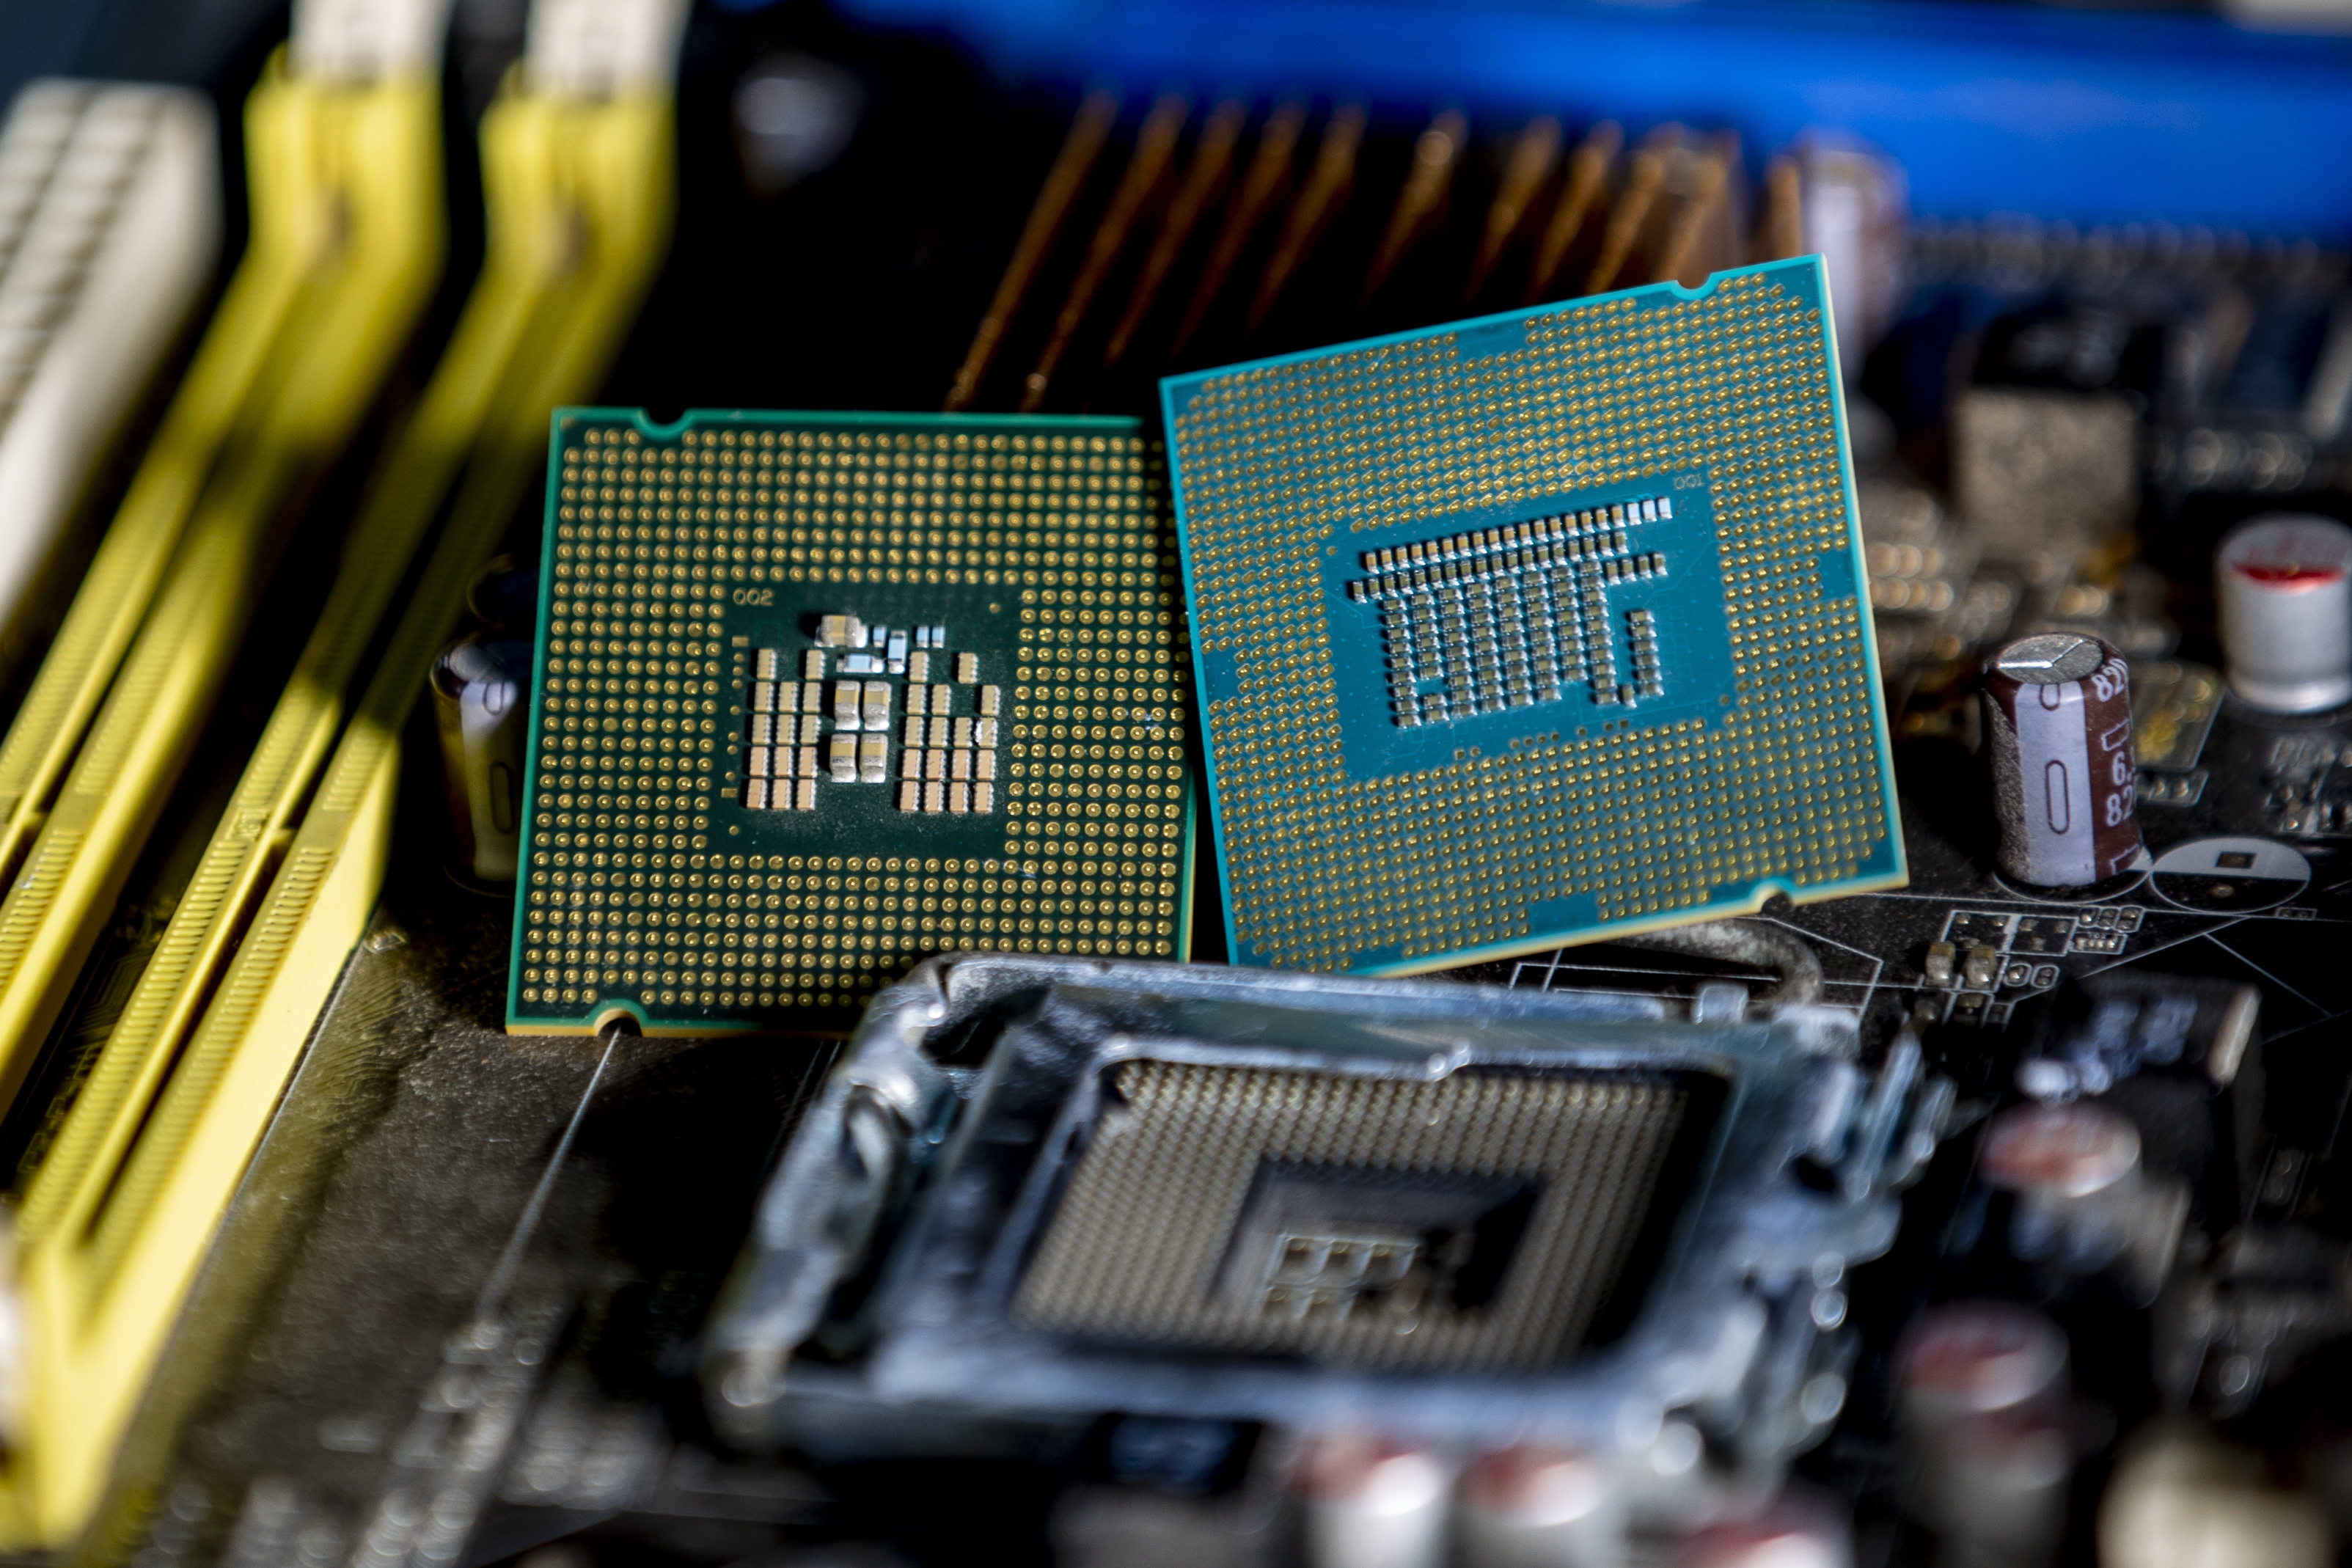 Researchers detail three new Intel and AMD Spectre vulnerabilities – Engadget